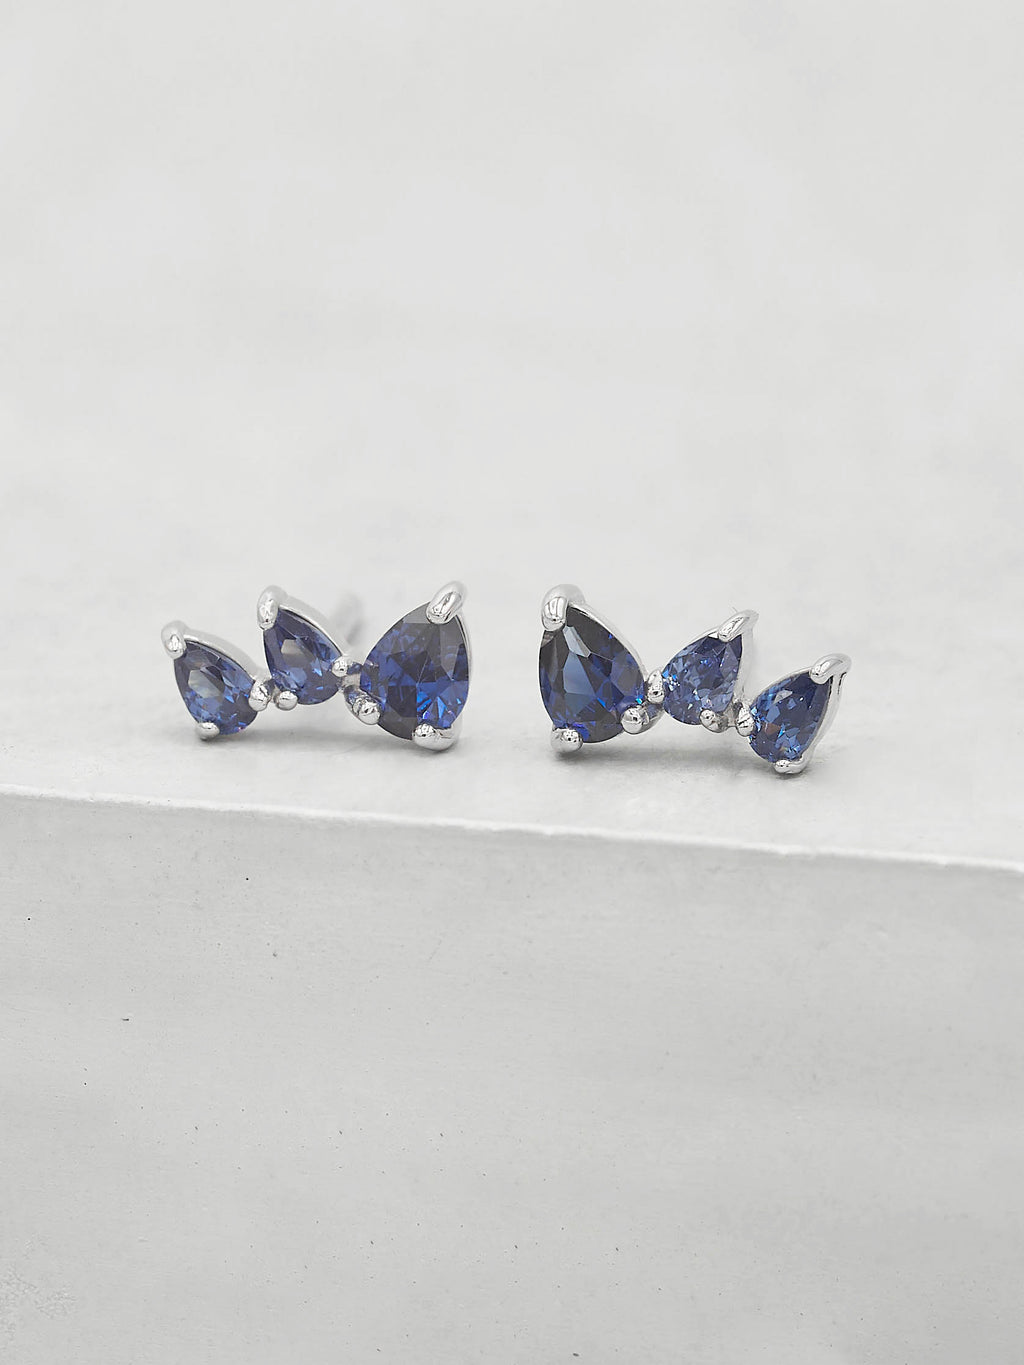 Rhodium Plated  3 Stones Blue Sapphire Pear Shape Cubic Zirconia CZ Stud Earrings by The Faint Hearted jewelry